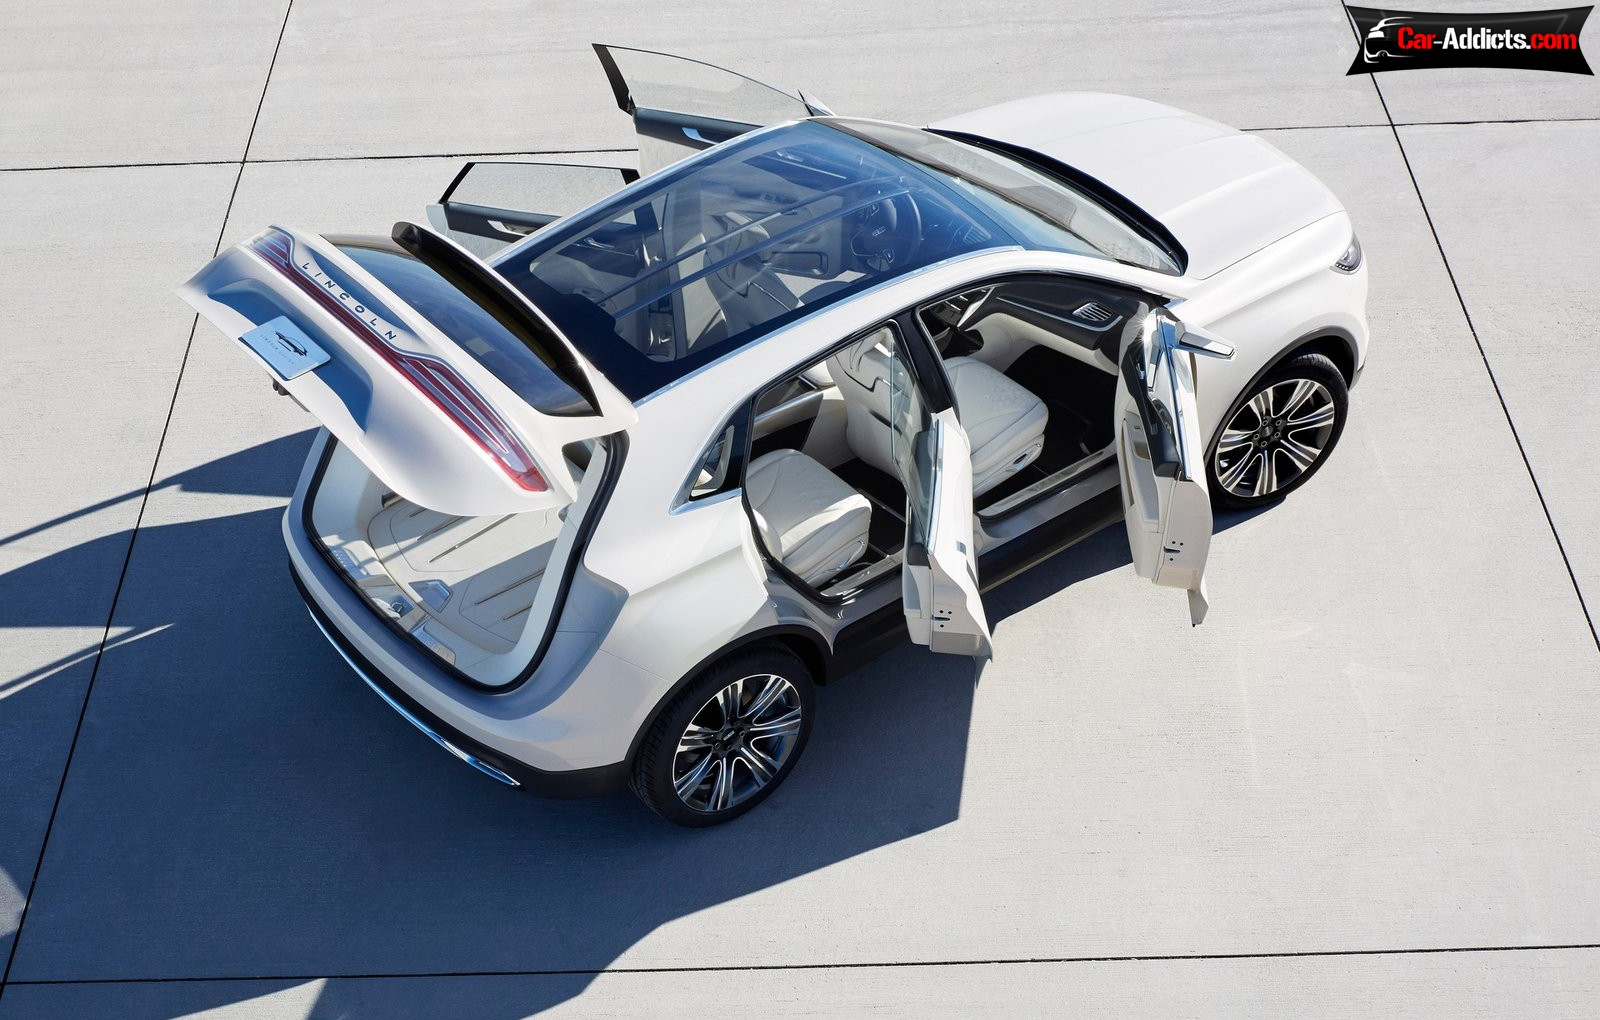 2014 Lincoln Mkc Concept Pics, Vehicles Collection